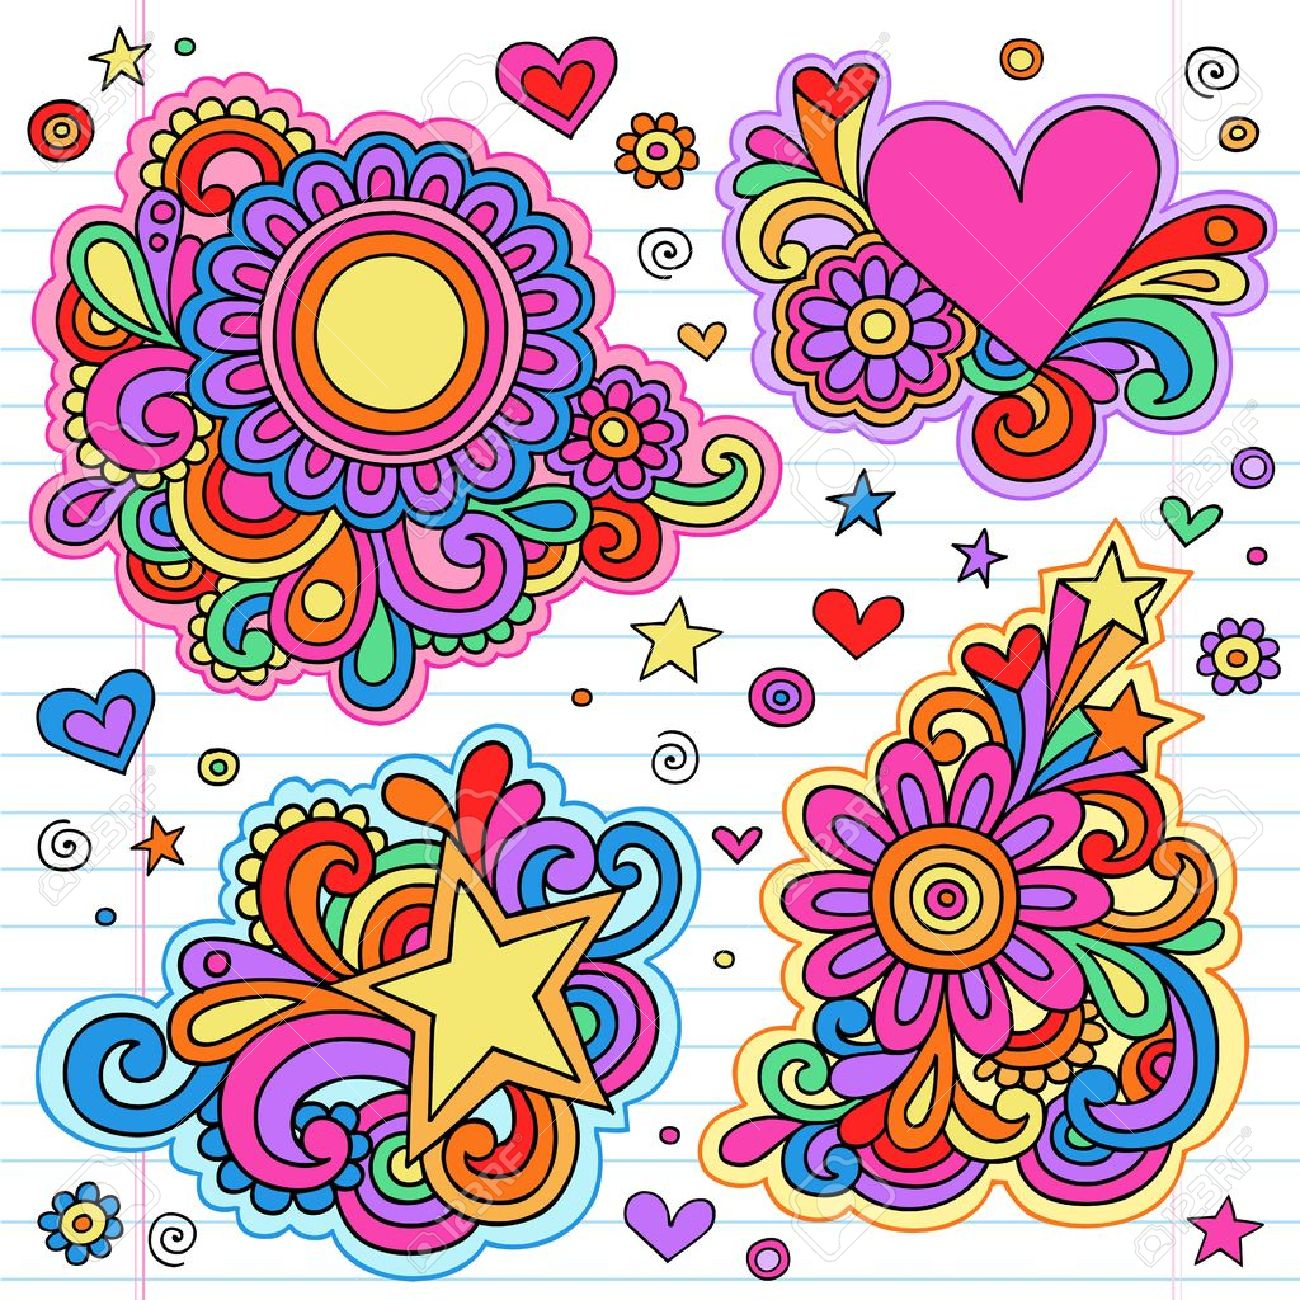 Groovy Psychedelic Doodles Hand Drawn Notebook Doodle Design Elements on Lined Sketchbook Paper Background Stock Vector - 14050943